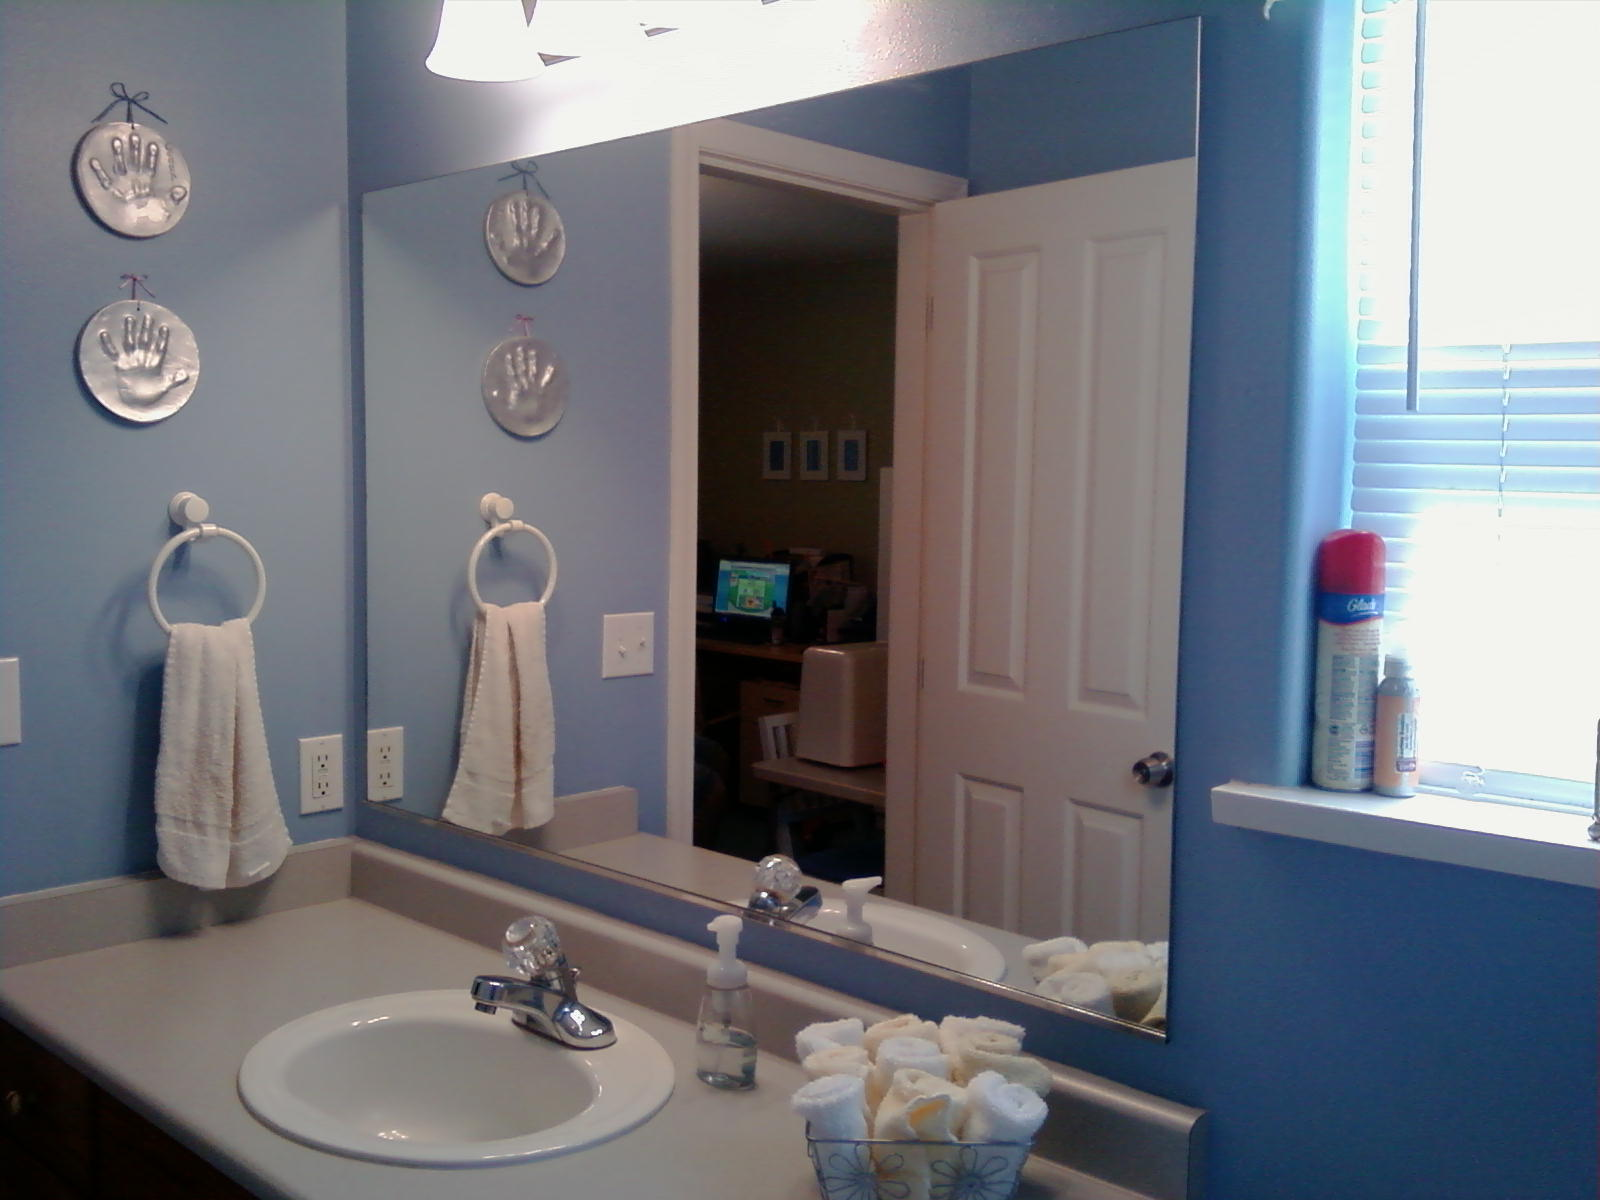 Bathroom mirror ideas diy - Frame Bathroom Mirror